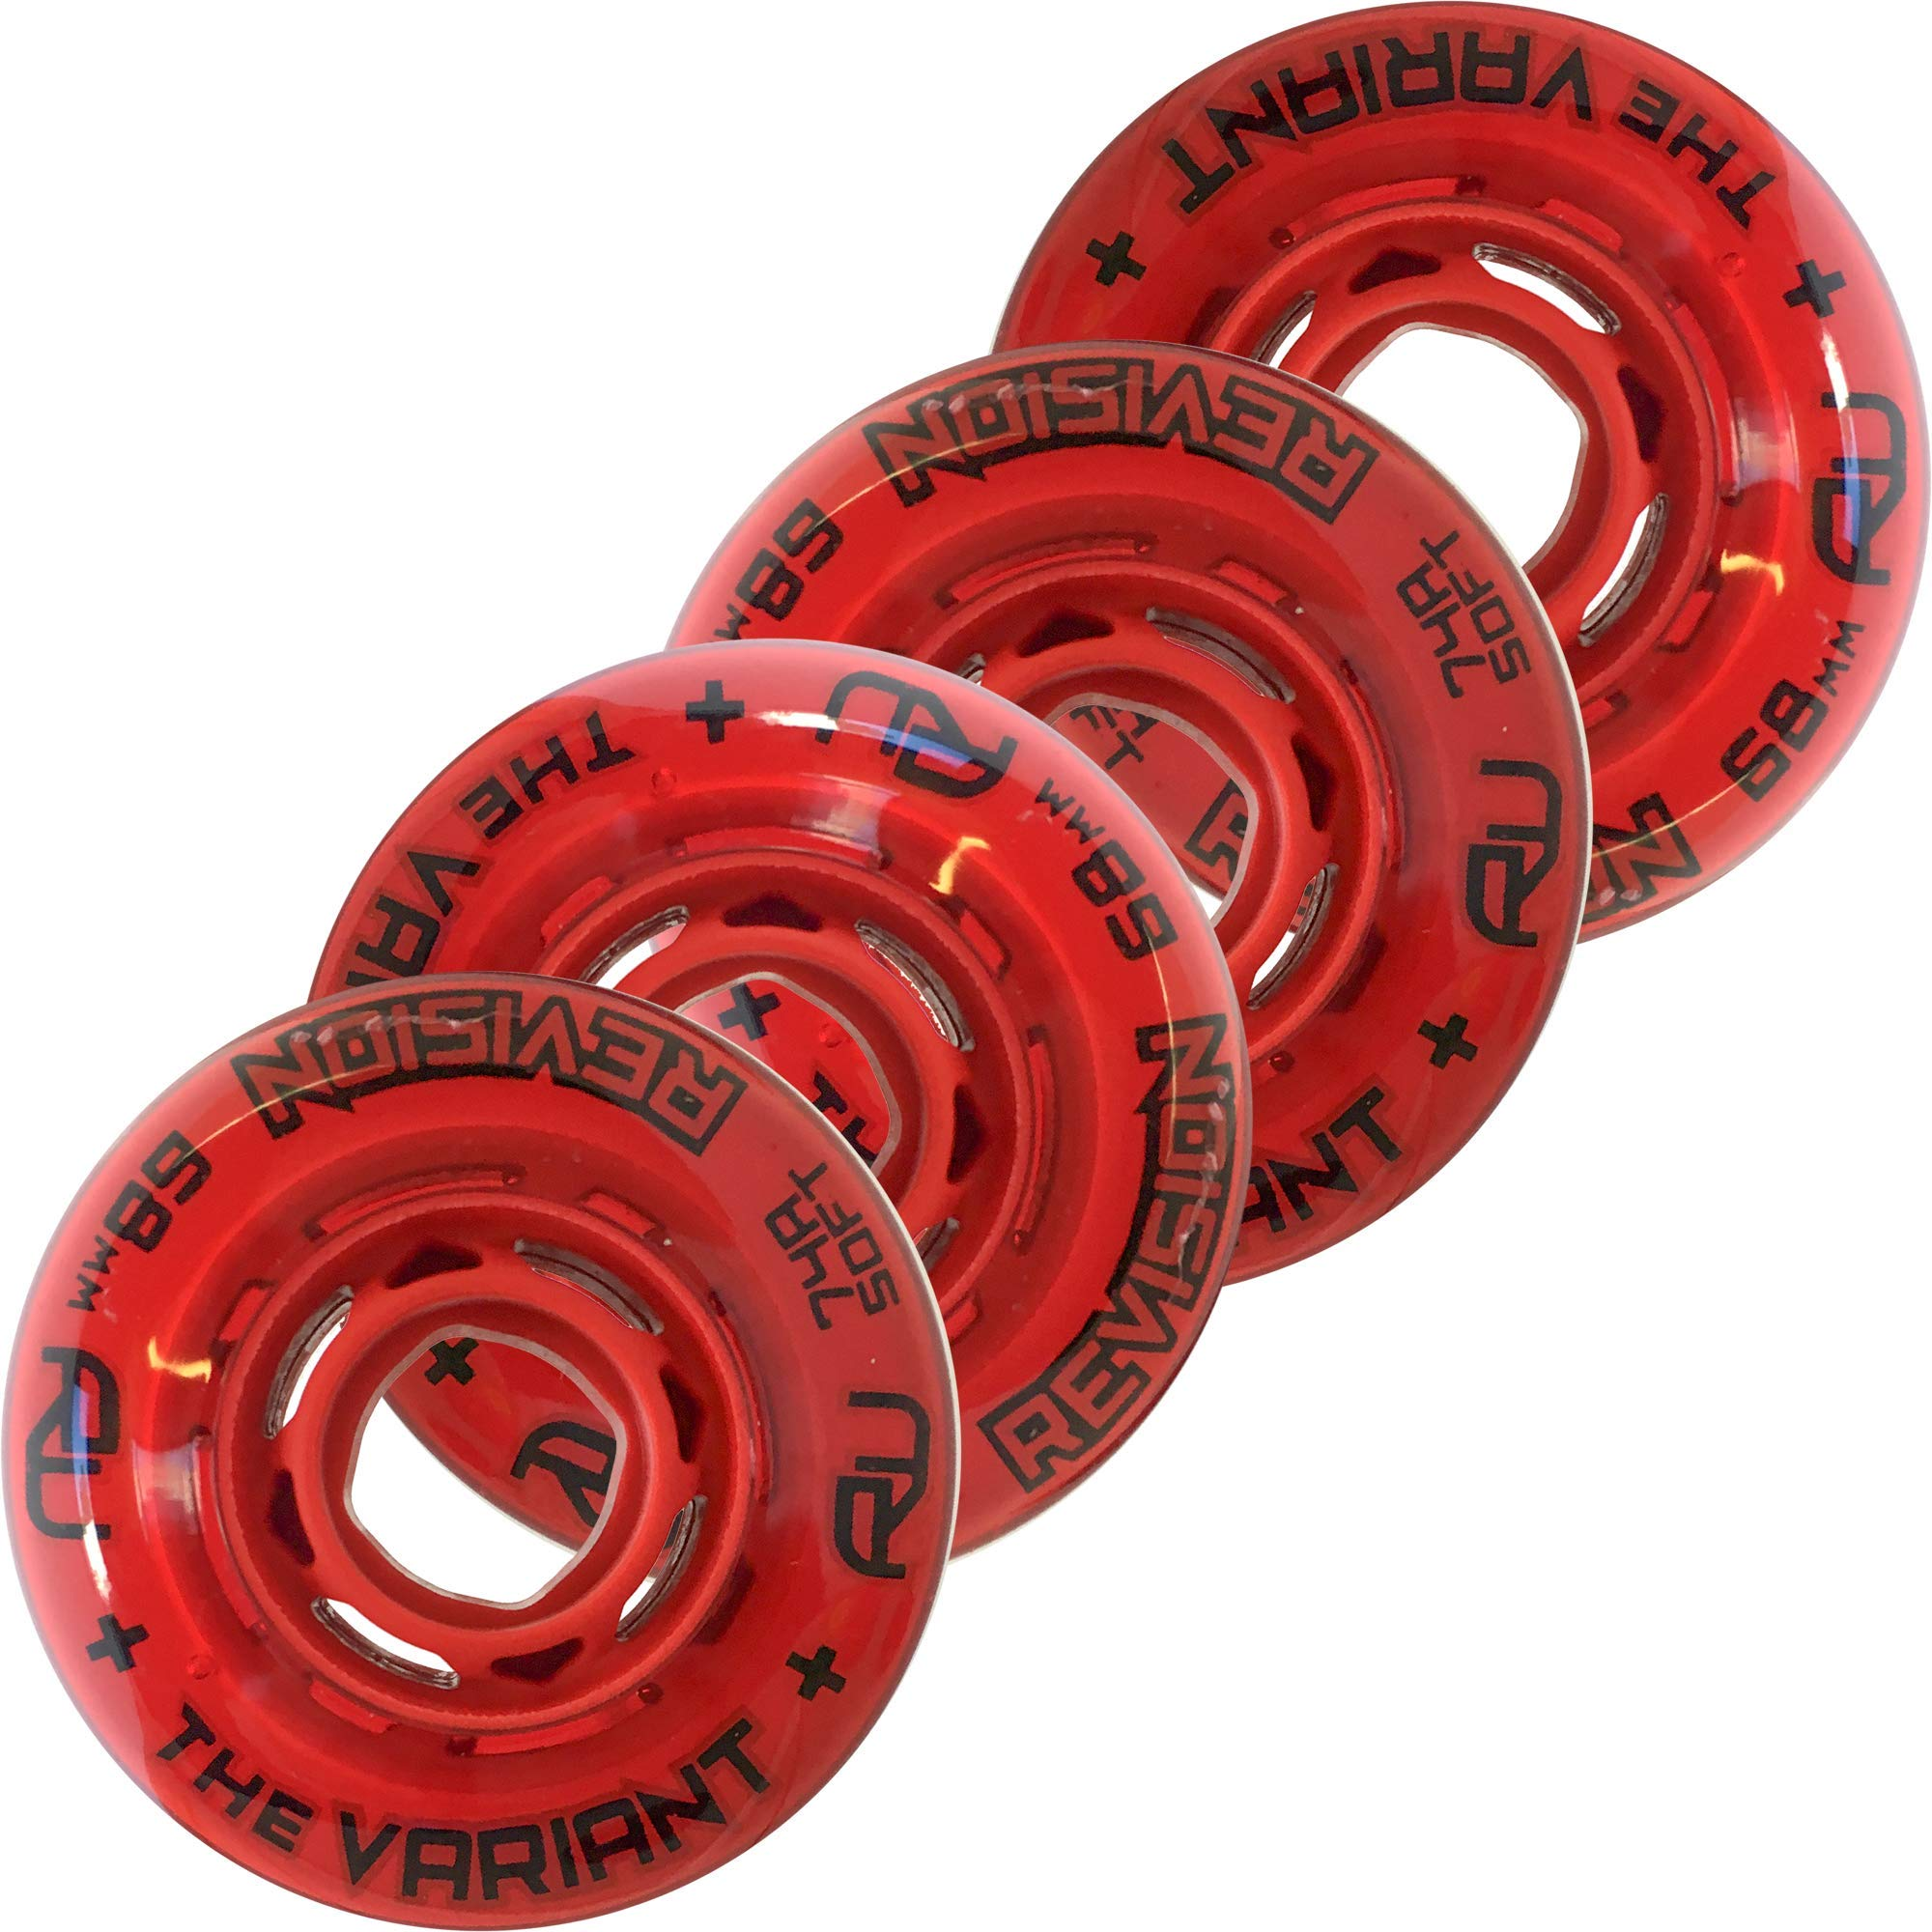 Revision Variant Indoor Inline Roller Hockey Wheel - 74A - 68mm Soft 4 Pack - Red by Revision Hockey